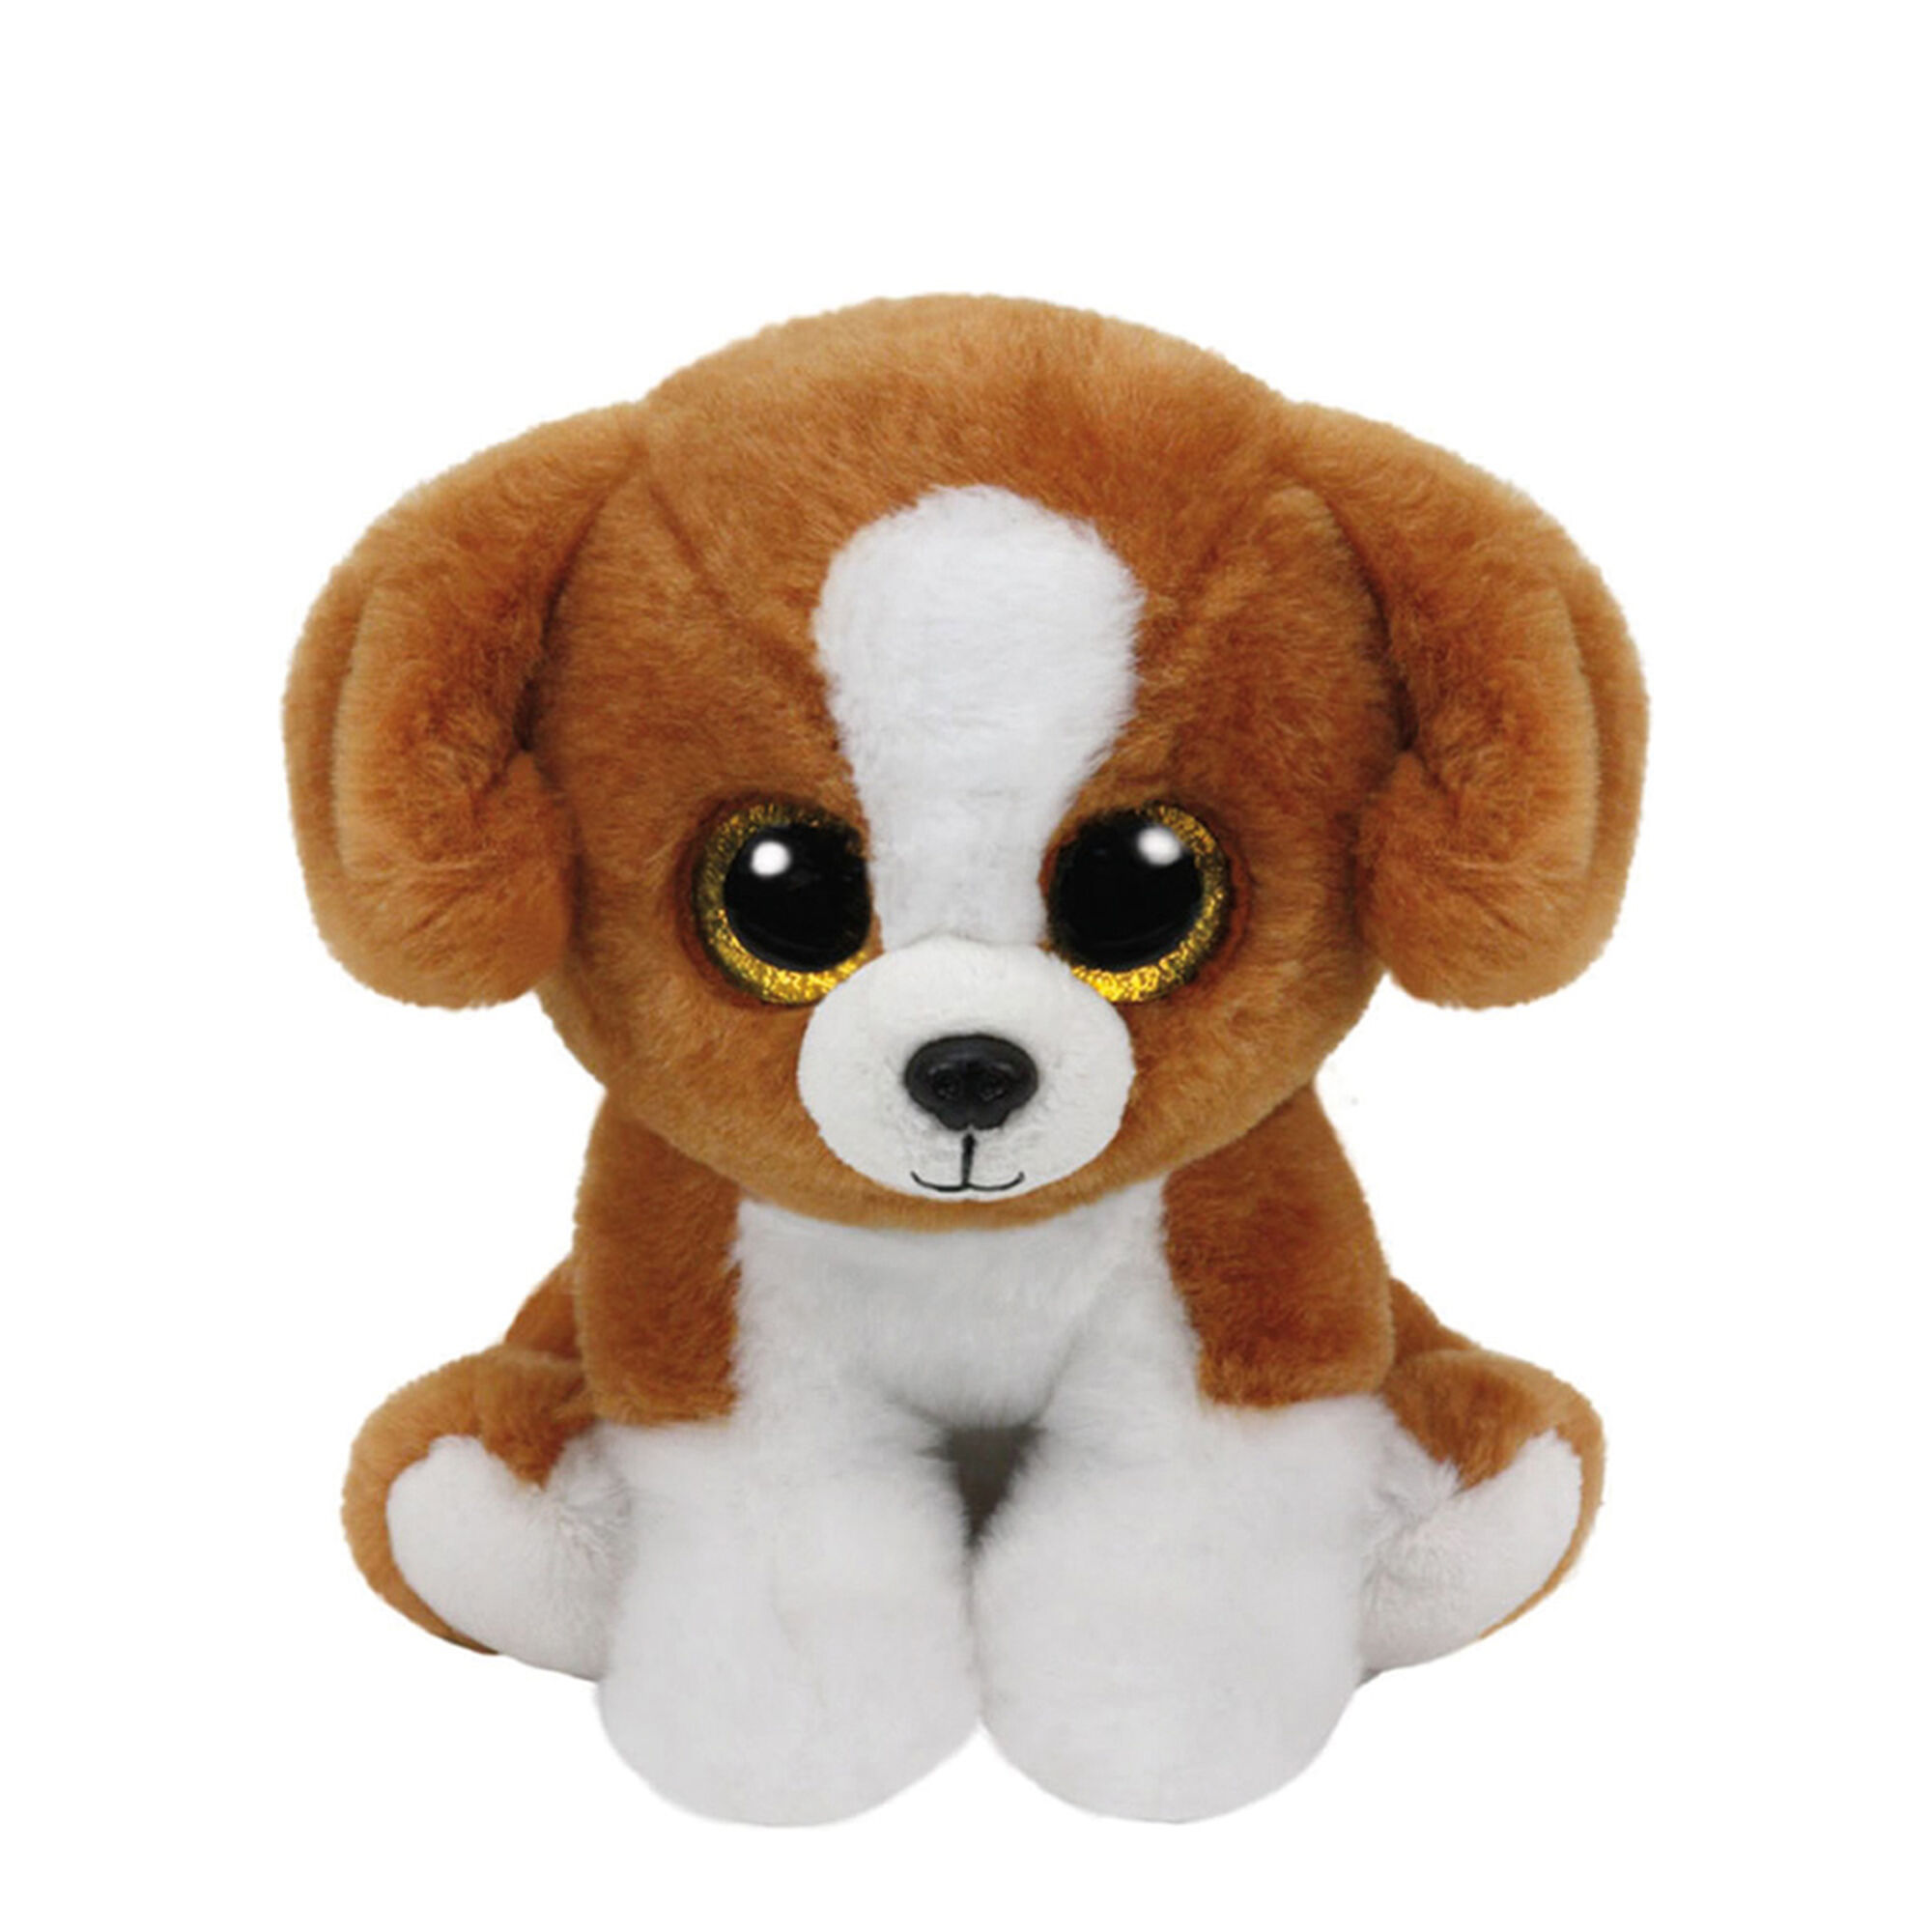 TY Beanie Boo Small Snicky the Dog Plush Toy